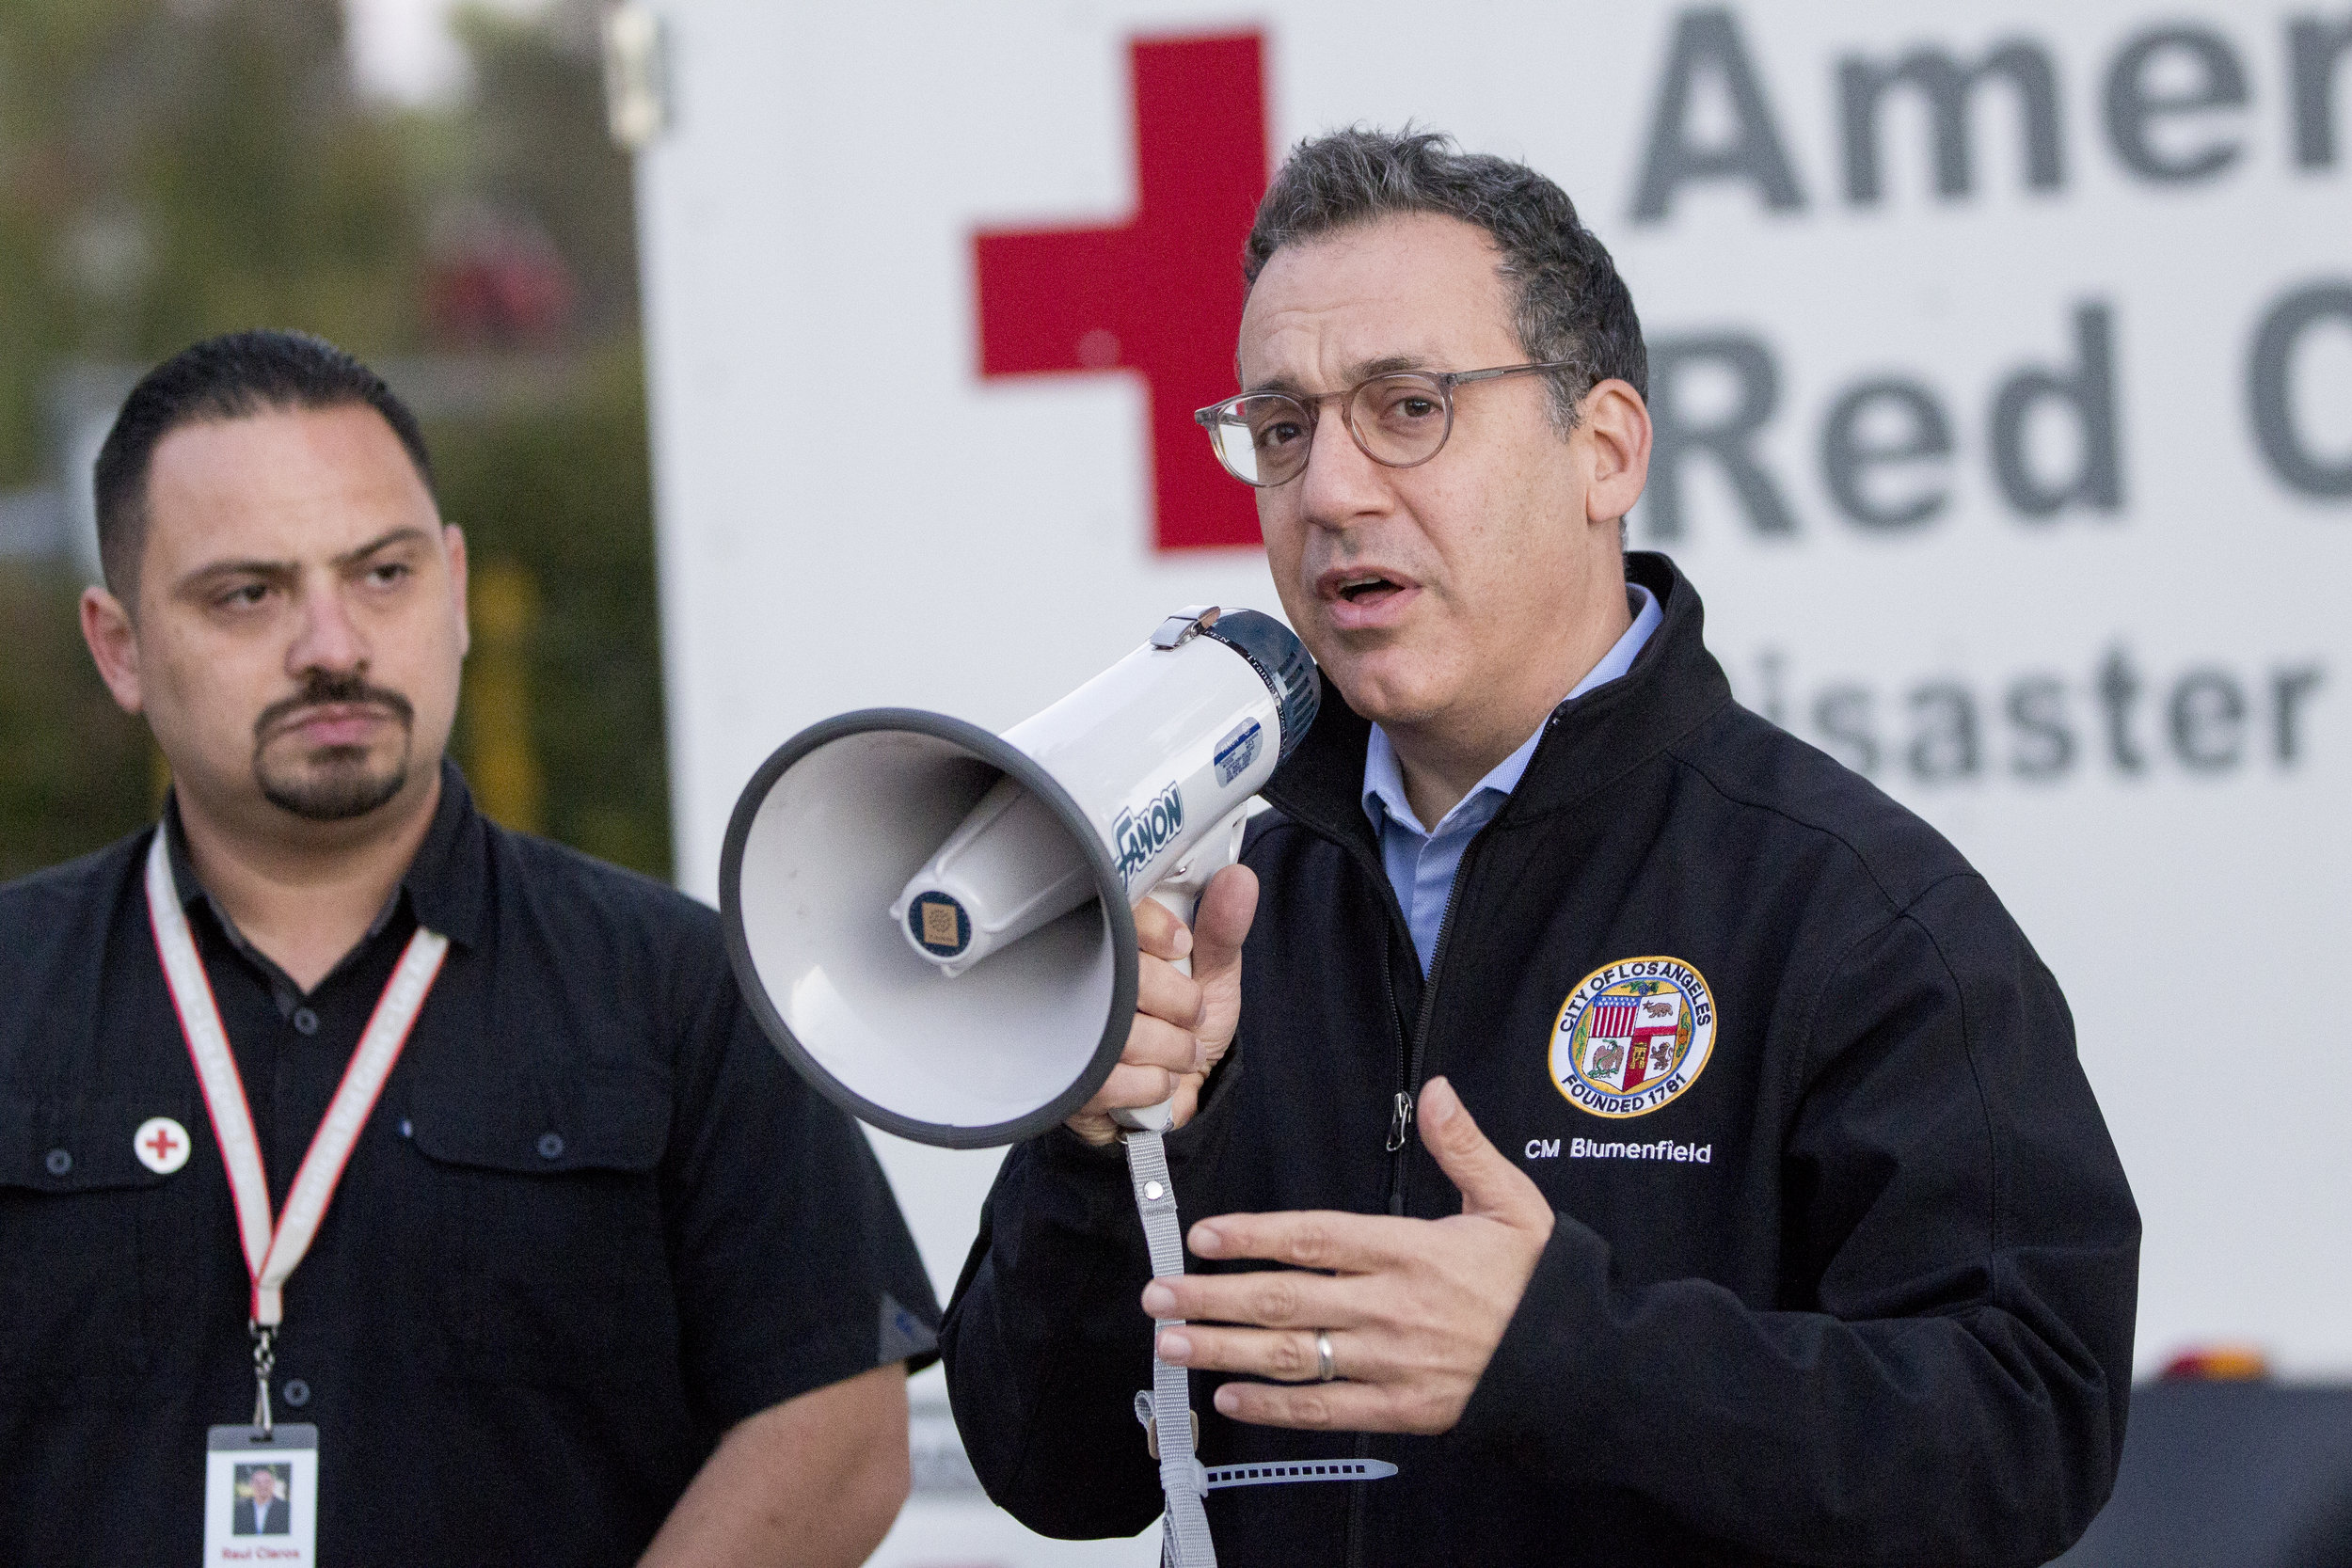 Councilmember Bob Blumenfield speaks to evacuees at the Woolsey fire evacuation center set up at Los Angeles Pierce College on November 9, 2018 in Woodland Hills, Calif. (Jose Lopez)